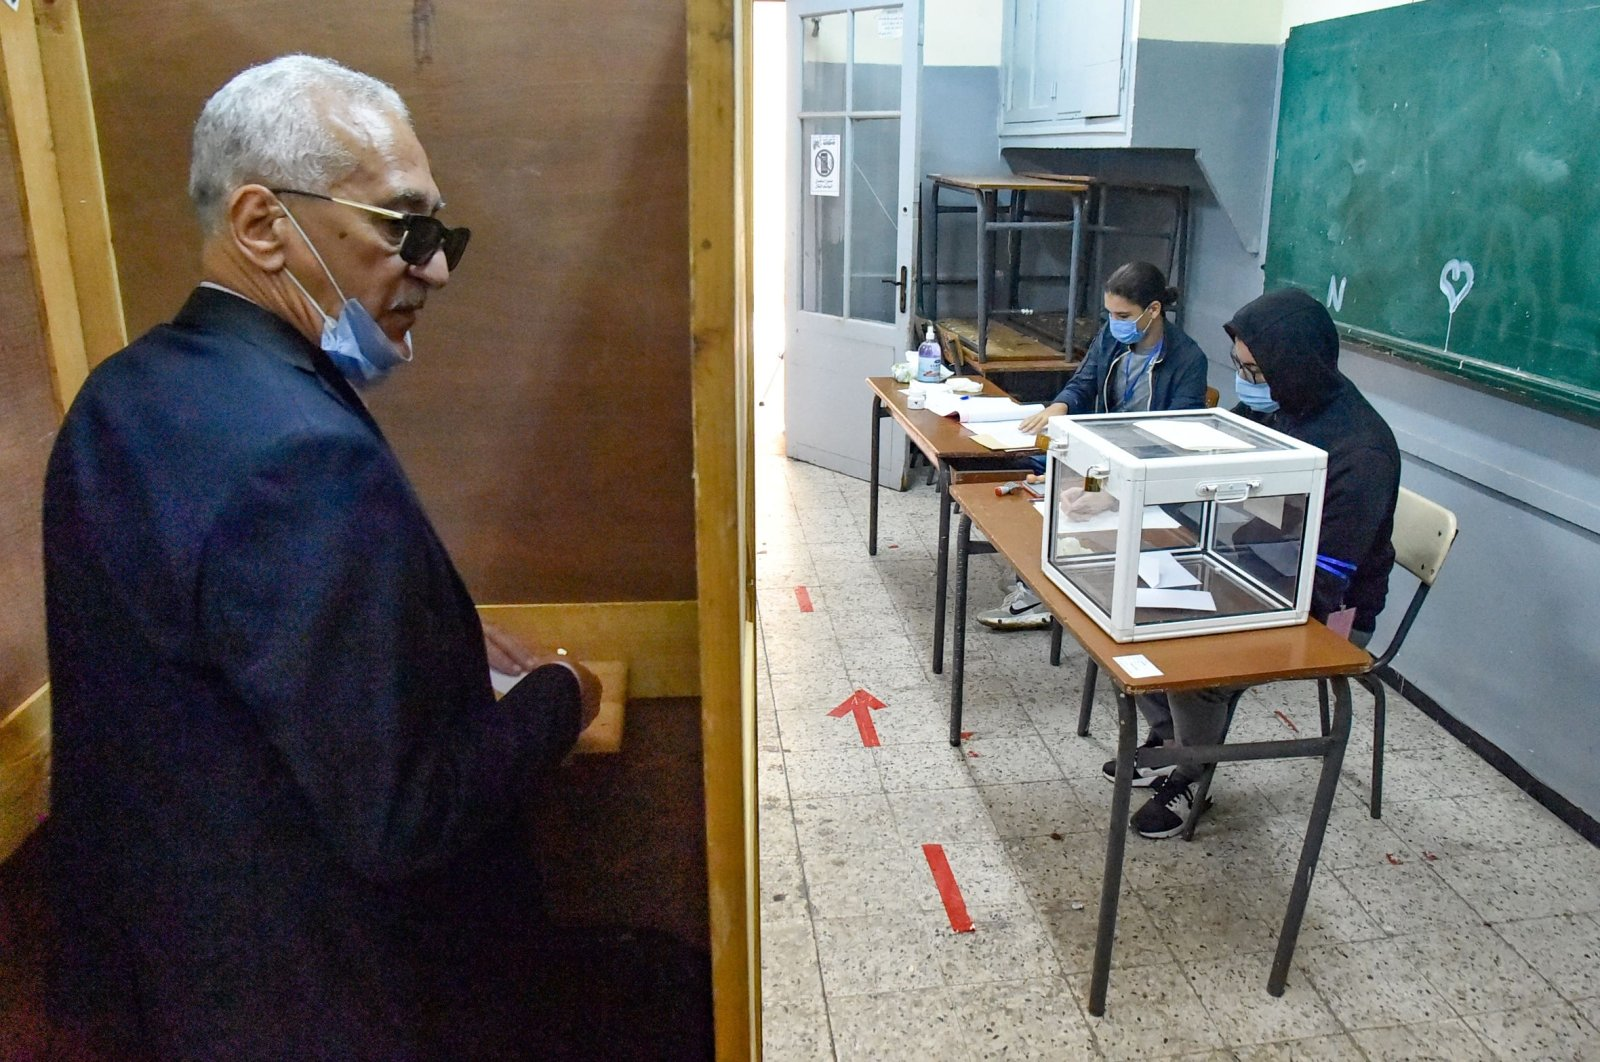 An Algerian man prepares to vote at a polling station during a vote for a revised constitution, in the capital Algiers, Nov. 1, 2020. (AFP Photo)